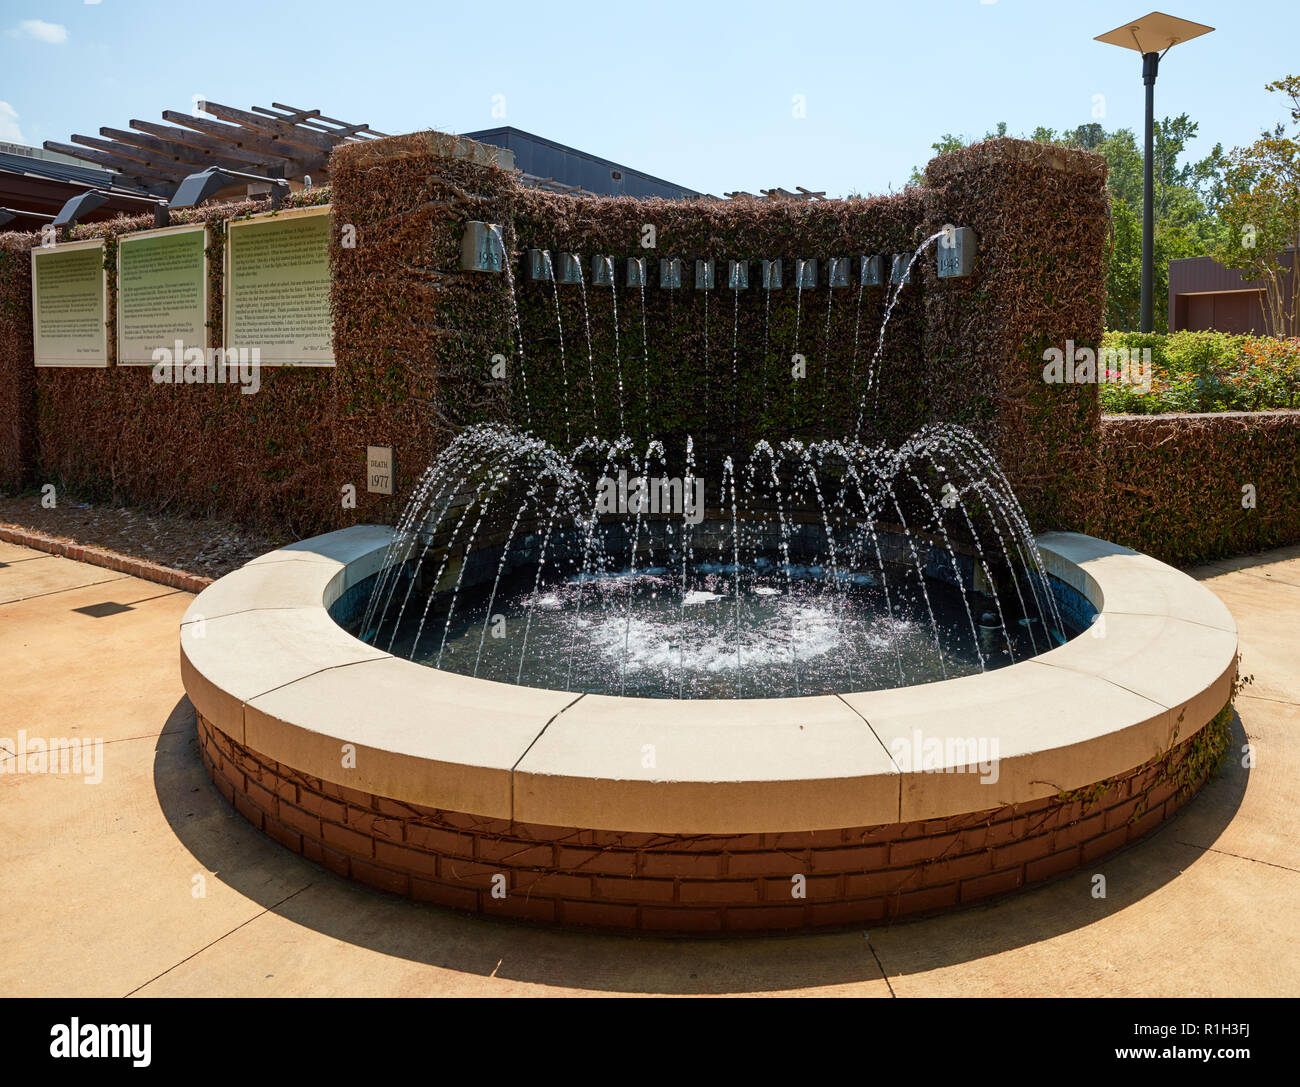 Fountain of Life at the Elvis Presley Birthplace museum, Tupelo, Mississippi - Stock Image